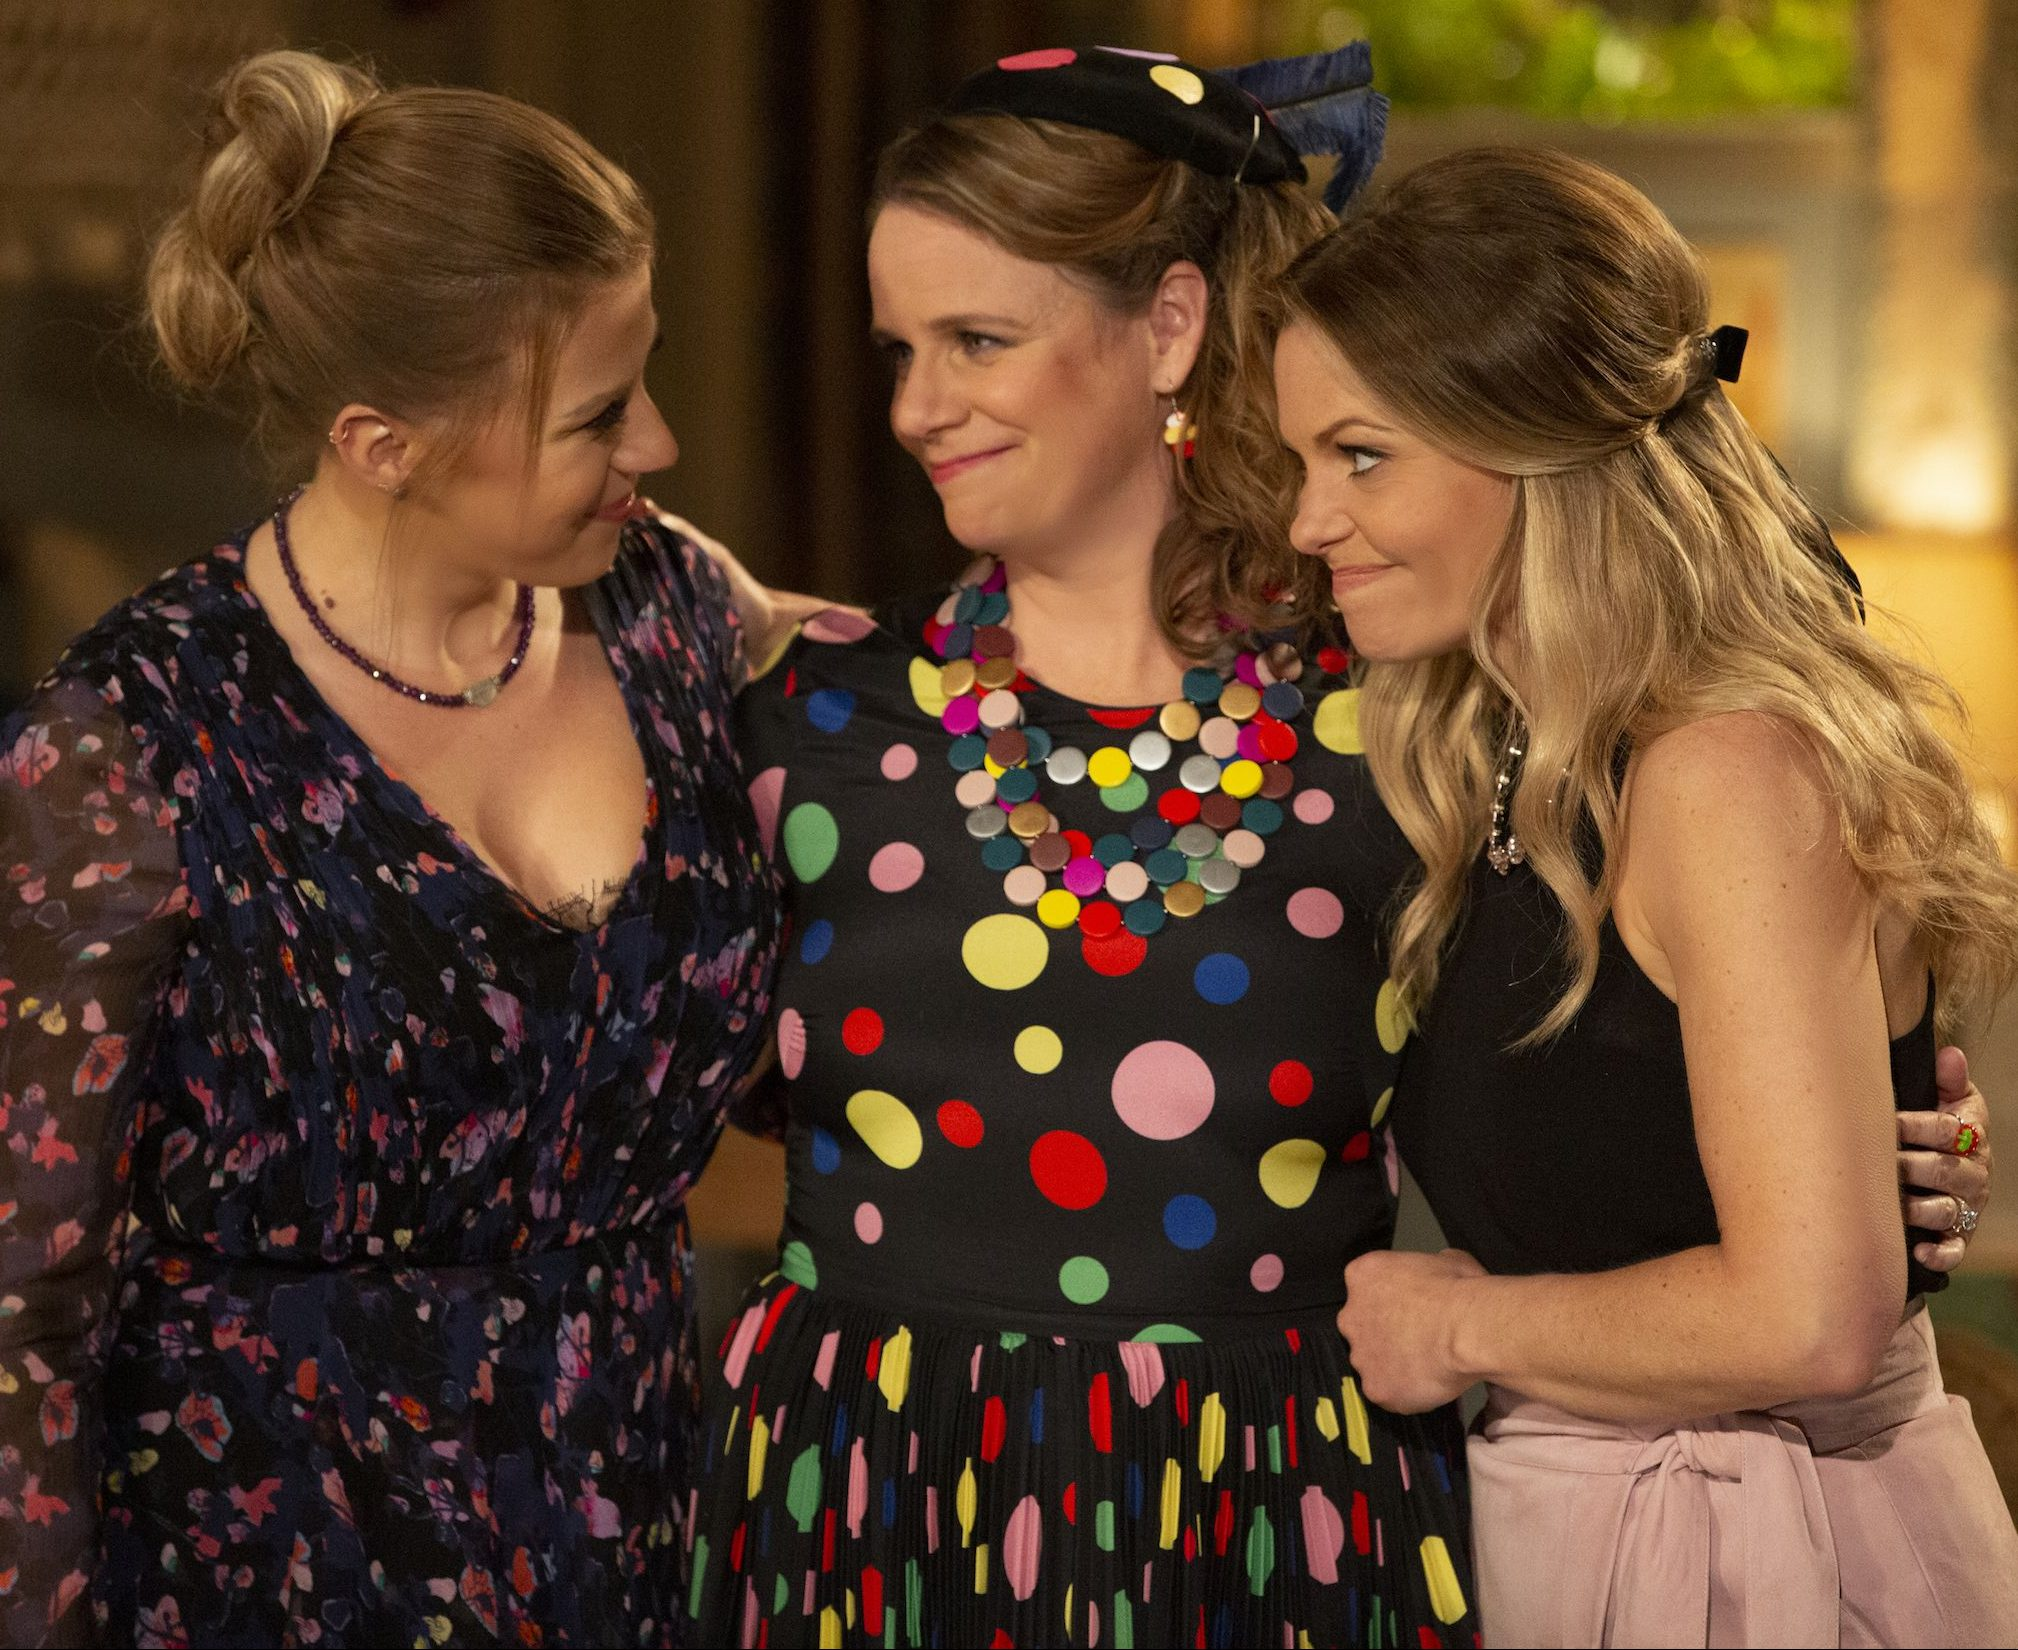 fuller house season 5 cast episodes release date 1588170517 e1619616315512 The Best (And Worst) Revivals Of 80s Movies And TV Shows